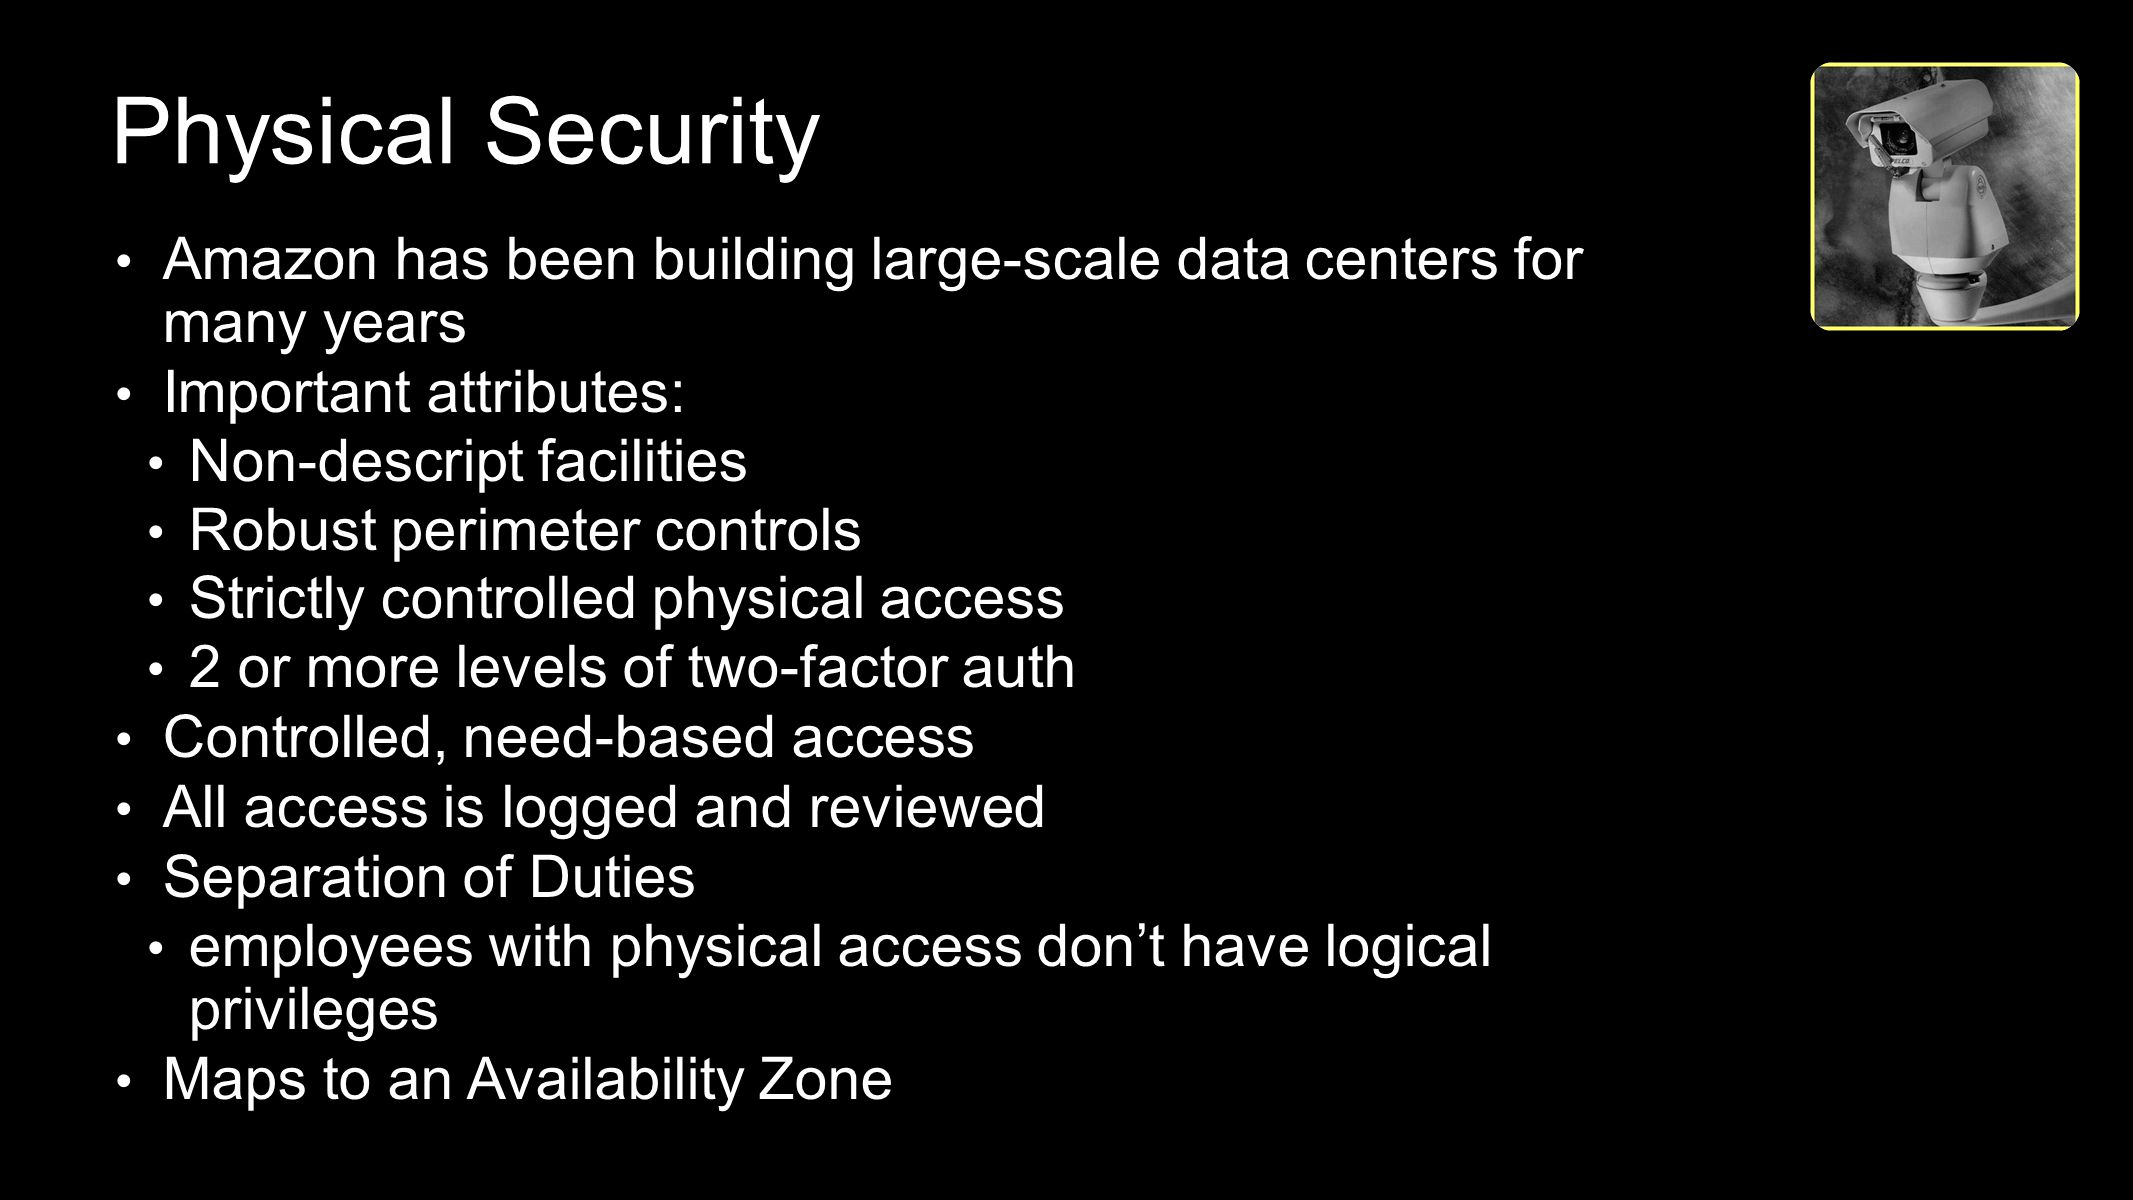 Physical Security ISO 27001 Payment Card Industry Data Security Standard (PCI DSS) Level 1 Service Provider Amazon has been building large-scale data centers for many years Important attributes: Non-descript facilities Robust perimeter controls Strictly controlled physical access 2 or more levels of two-factor auth Controlled, need-based access All access is logged and reviewed Separation of Duties employees with physical access don't have logical privileges Maps to an Availability Zone